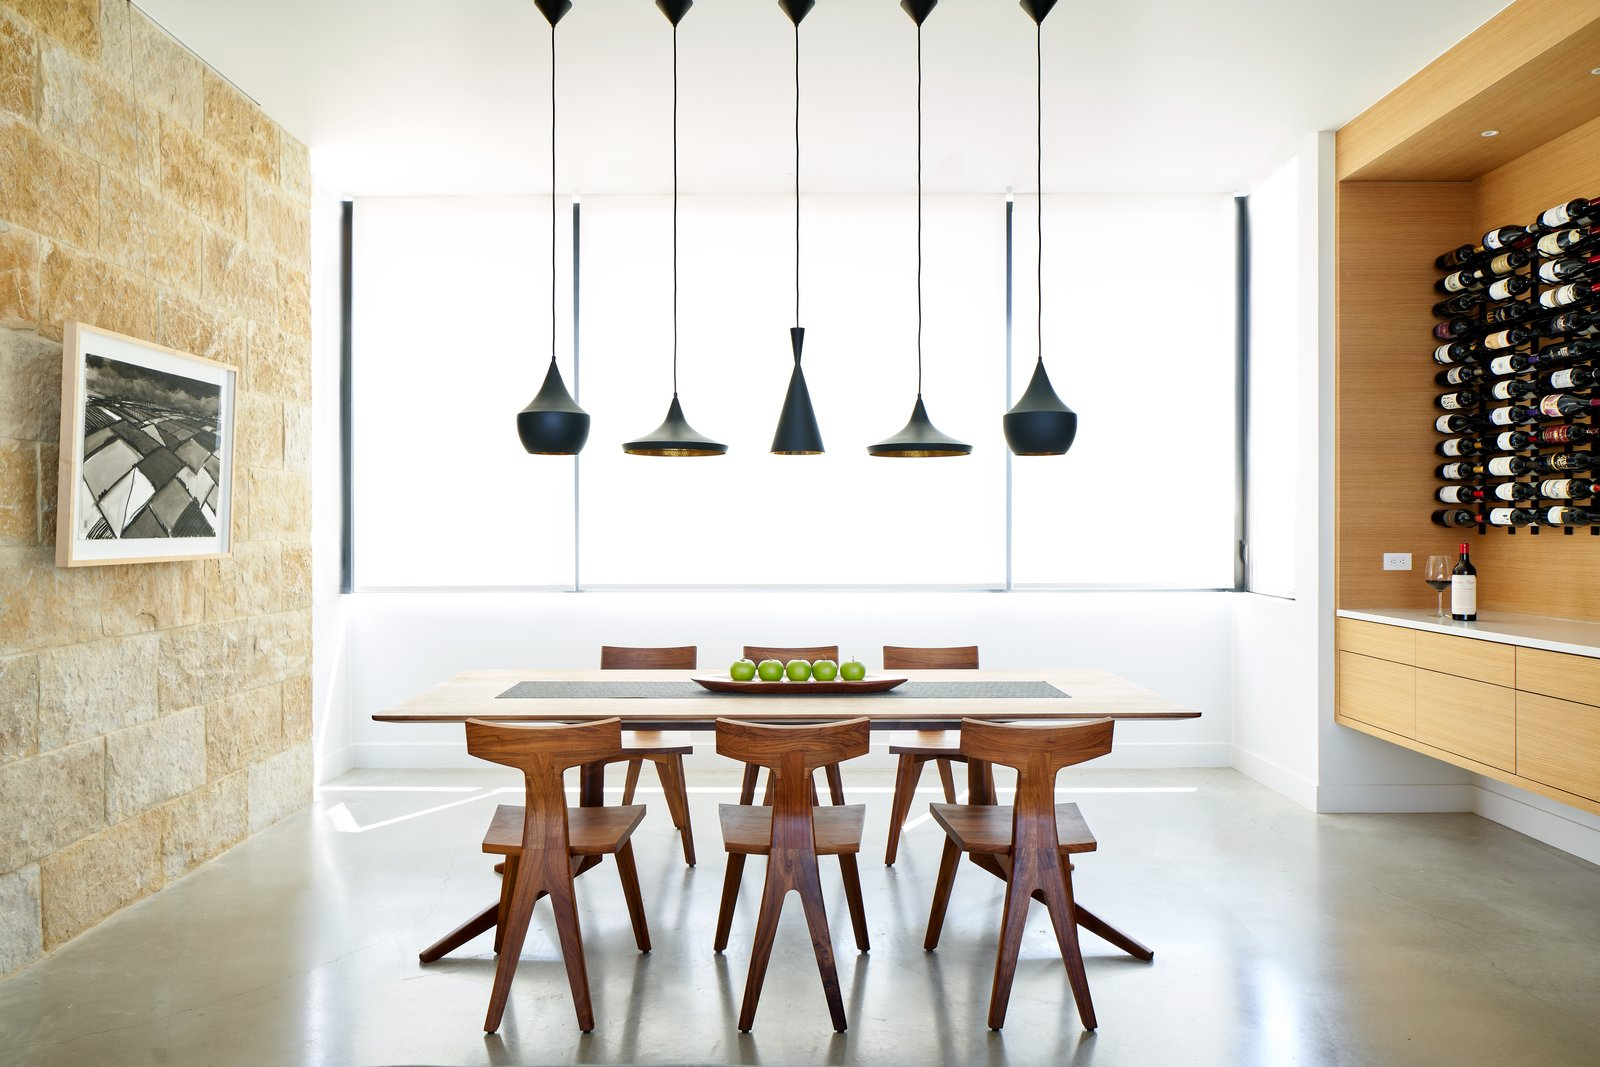 Dining, Chair, Ceiling, Concrete, Table, Recessed, Storage, Pendant, and Shelves Lago Vista by Dick Clark + Associates  Dining Concrete Table Ceiling Shelves Photos from Lago Vista